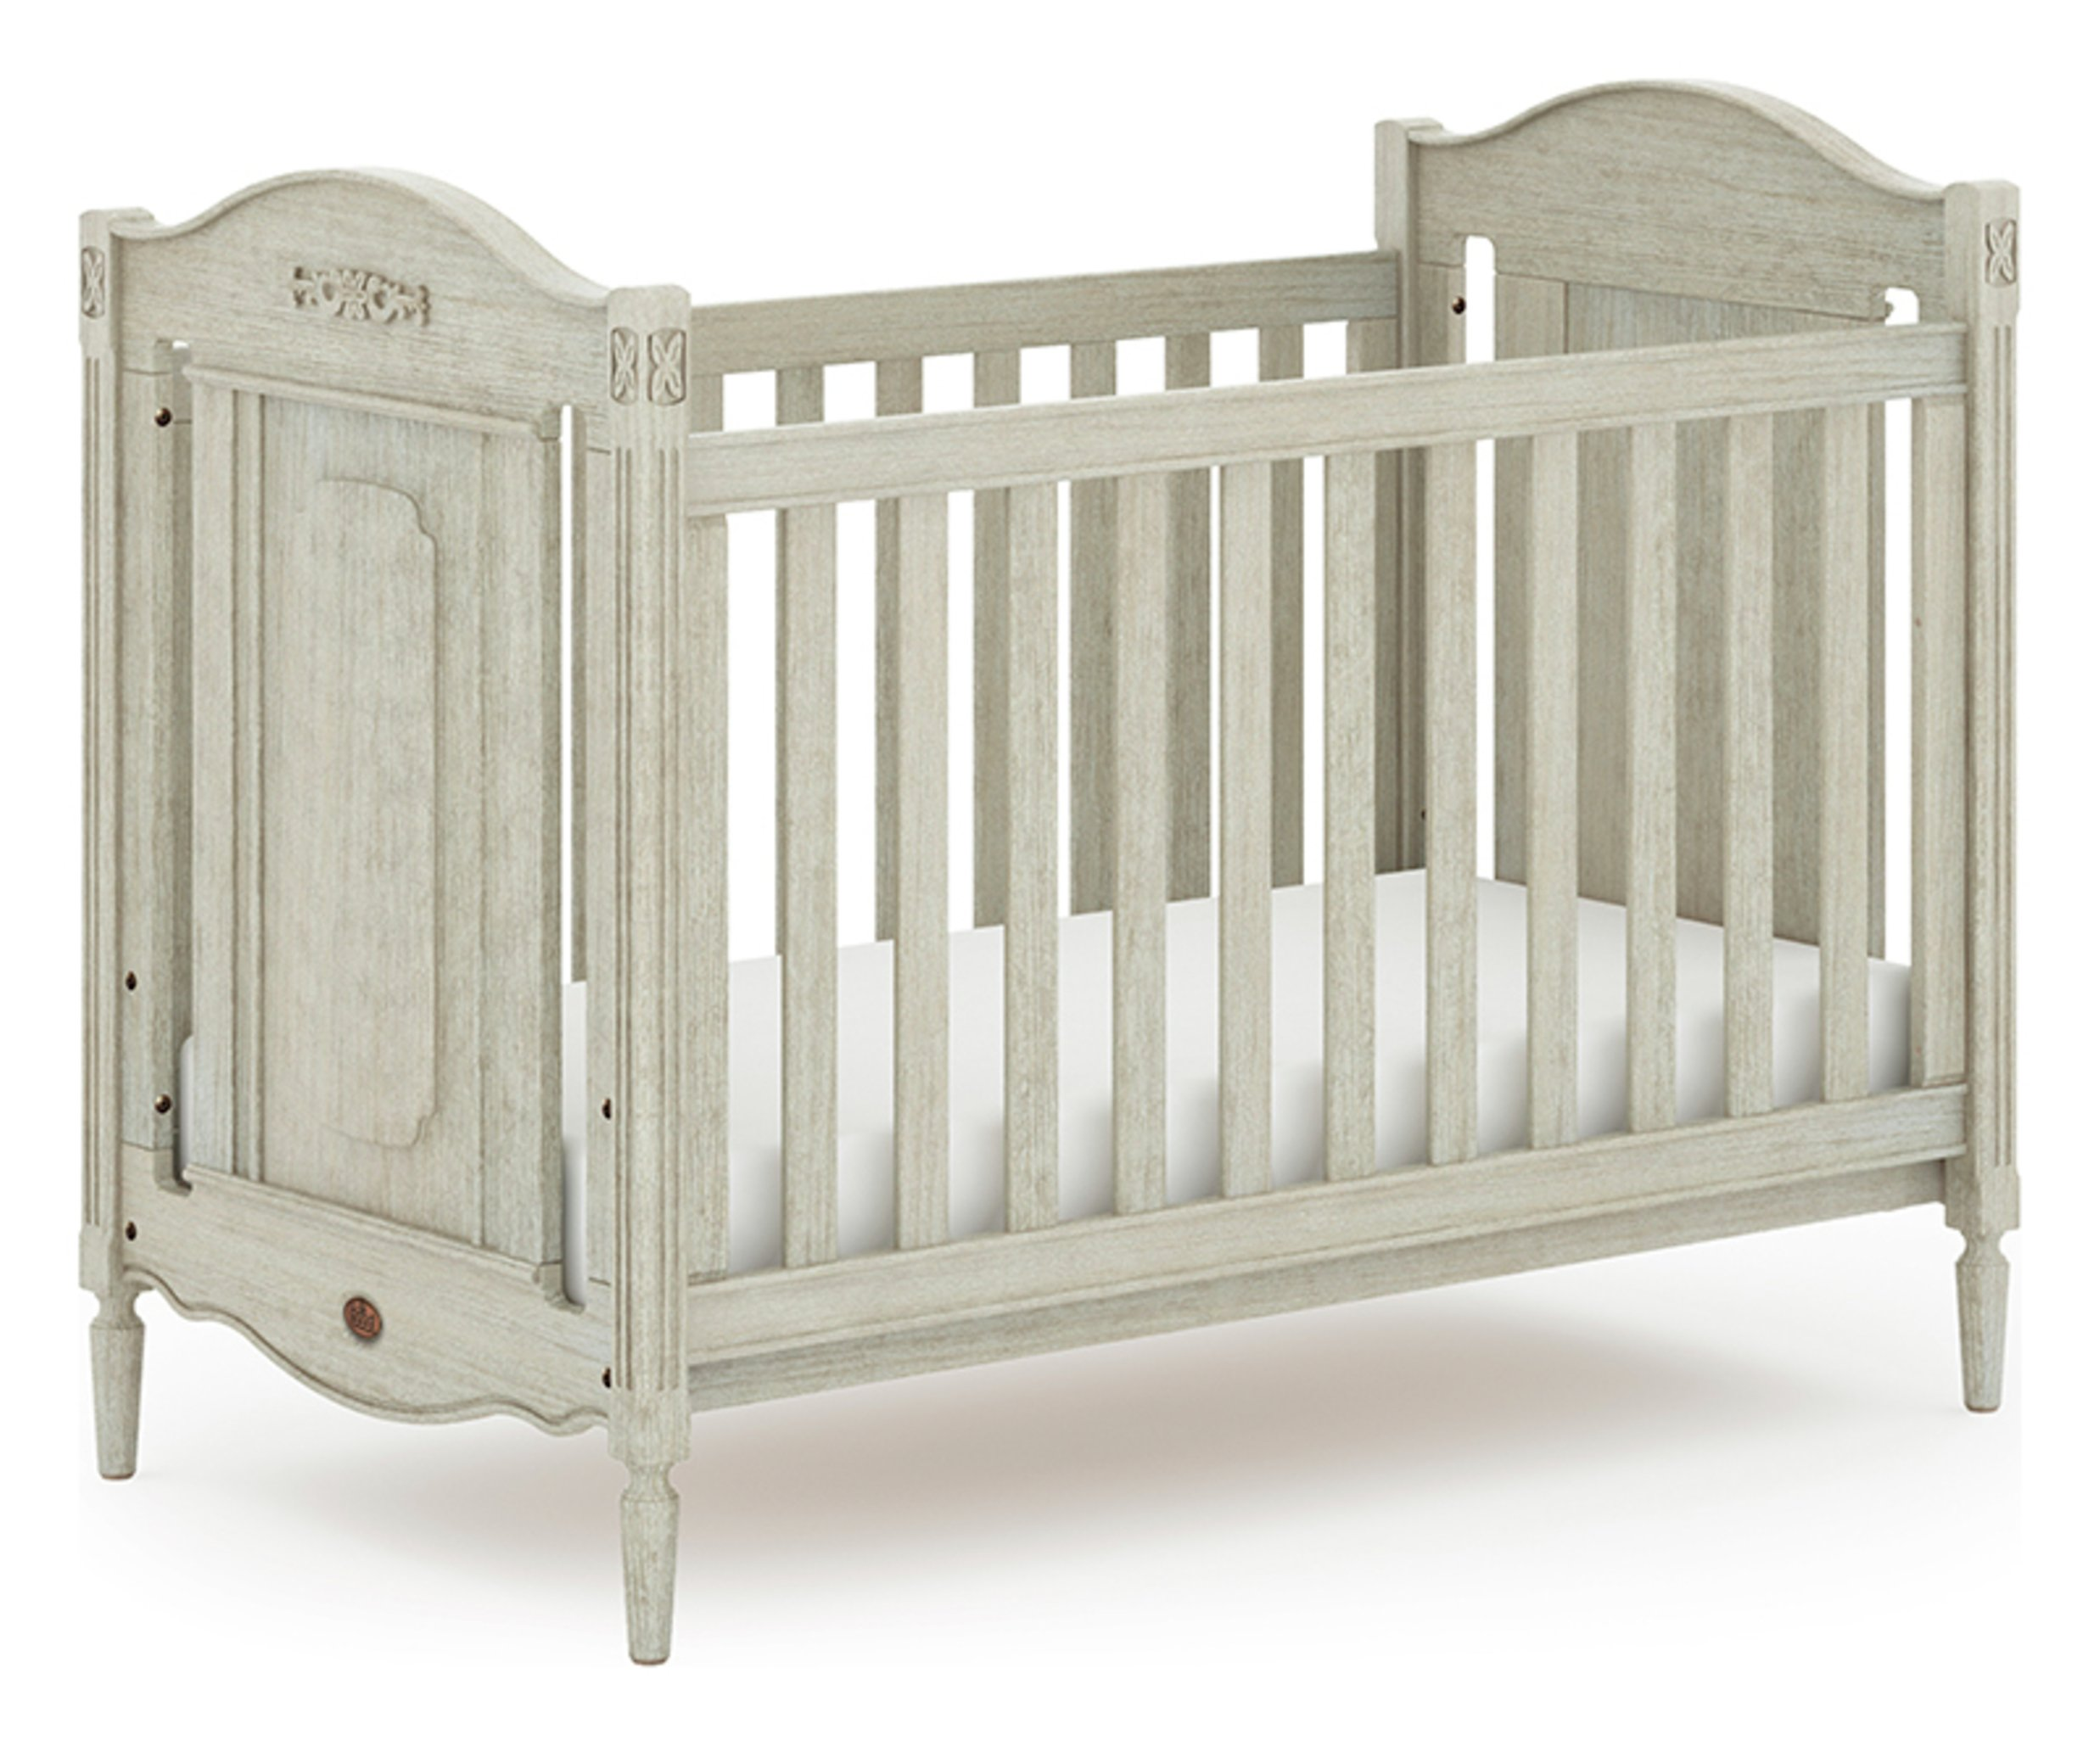 cots cribs and cot beds page 1 argos price tracker. Black Bedroom Furniture Sets. Home Design Ideas